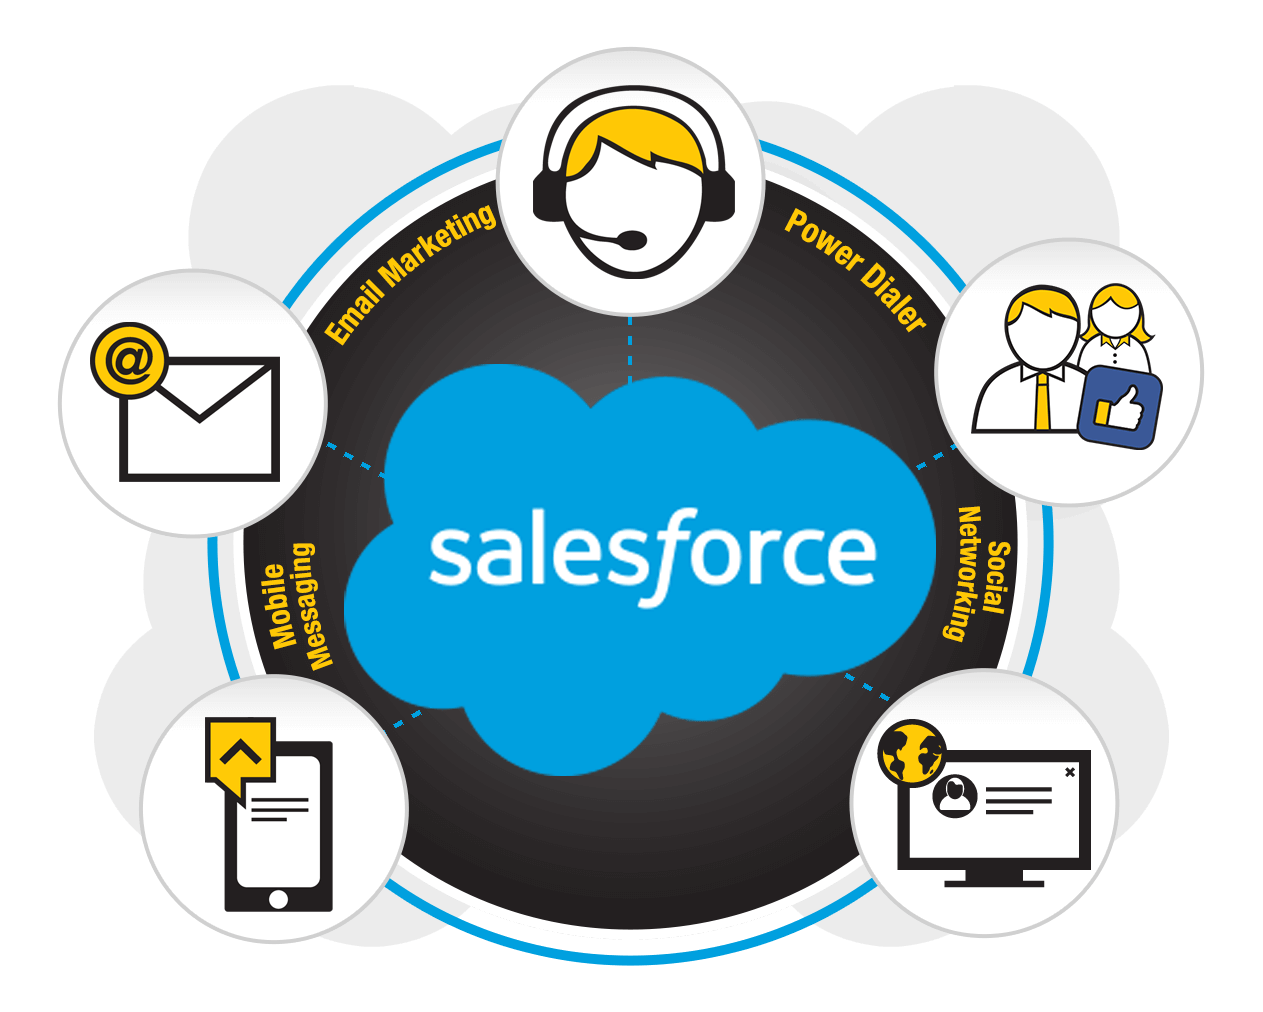 Salesforce DialStream